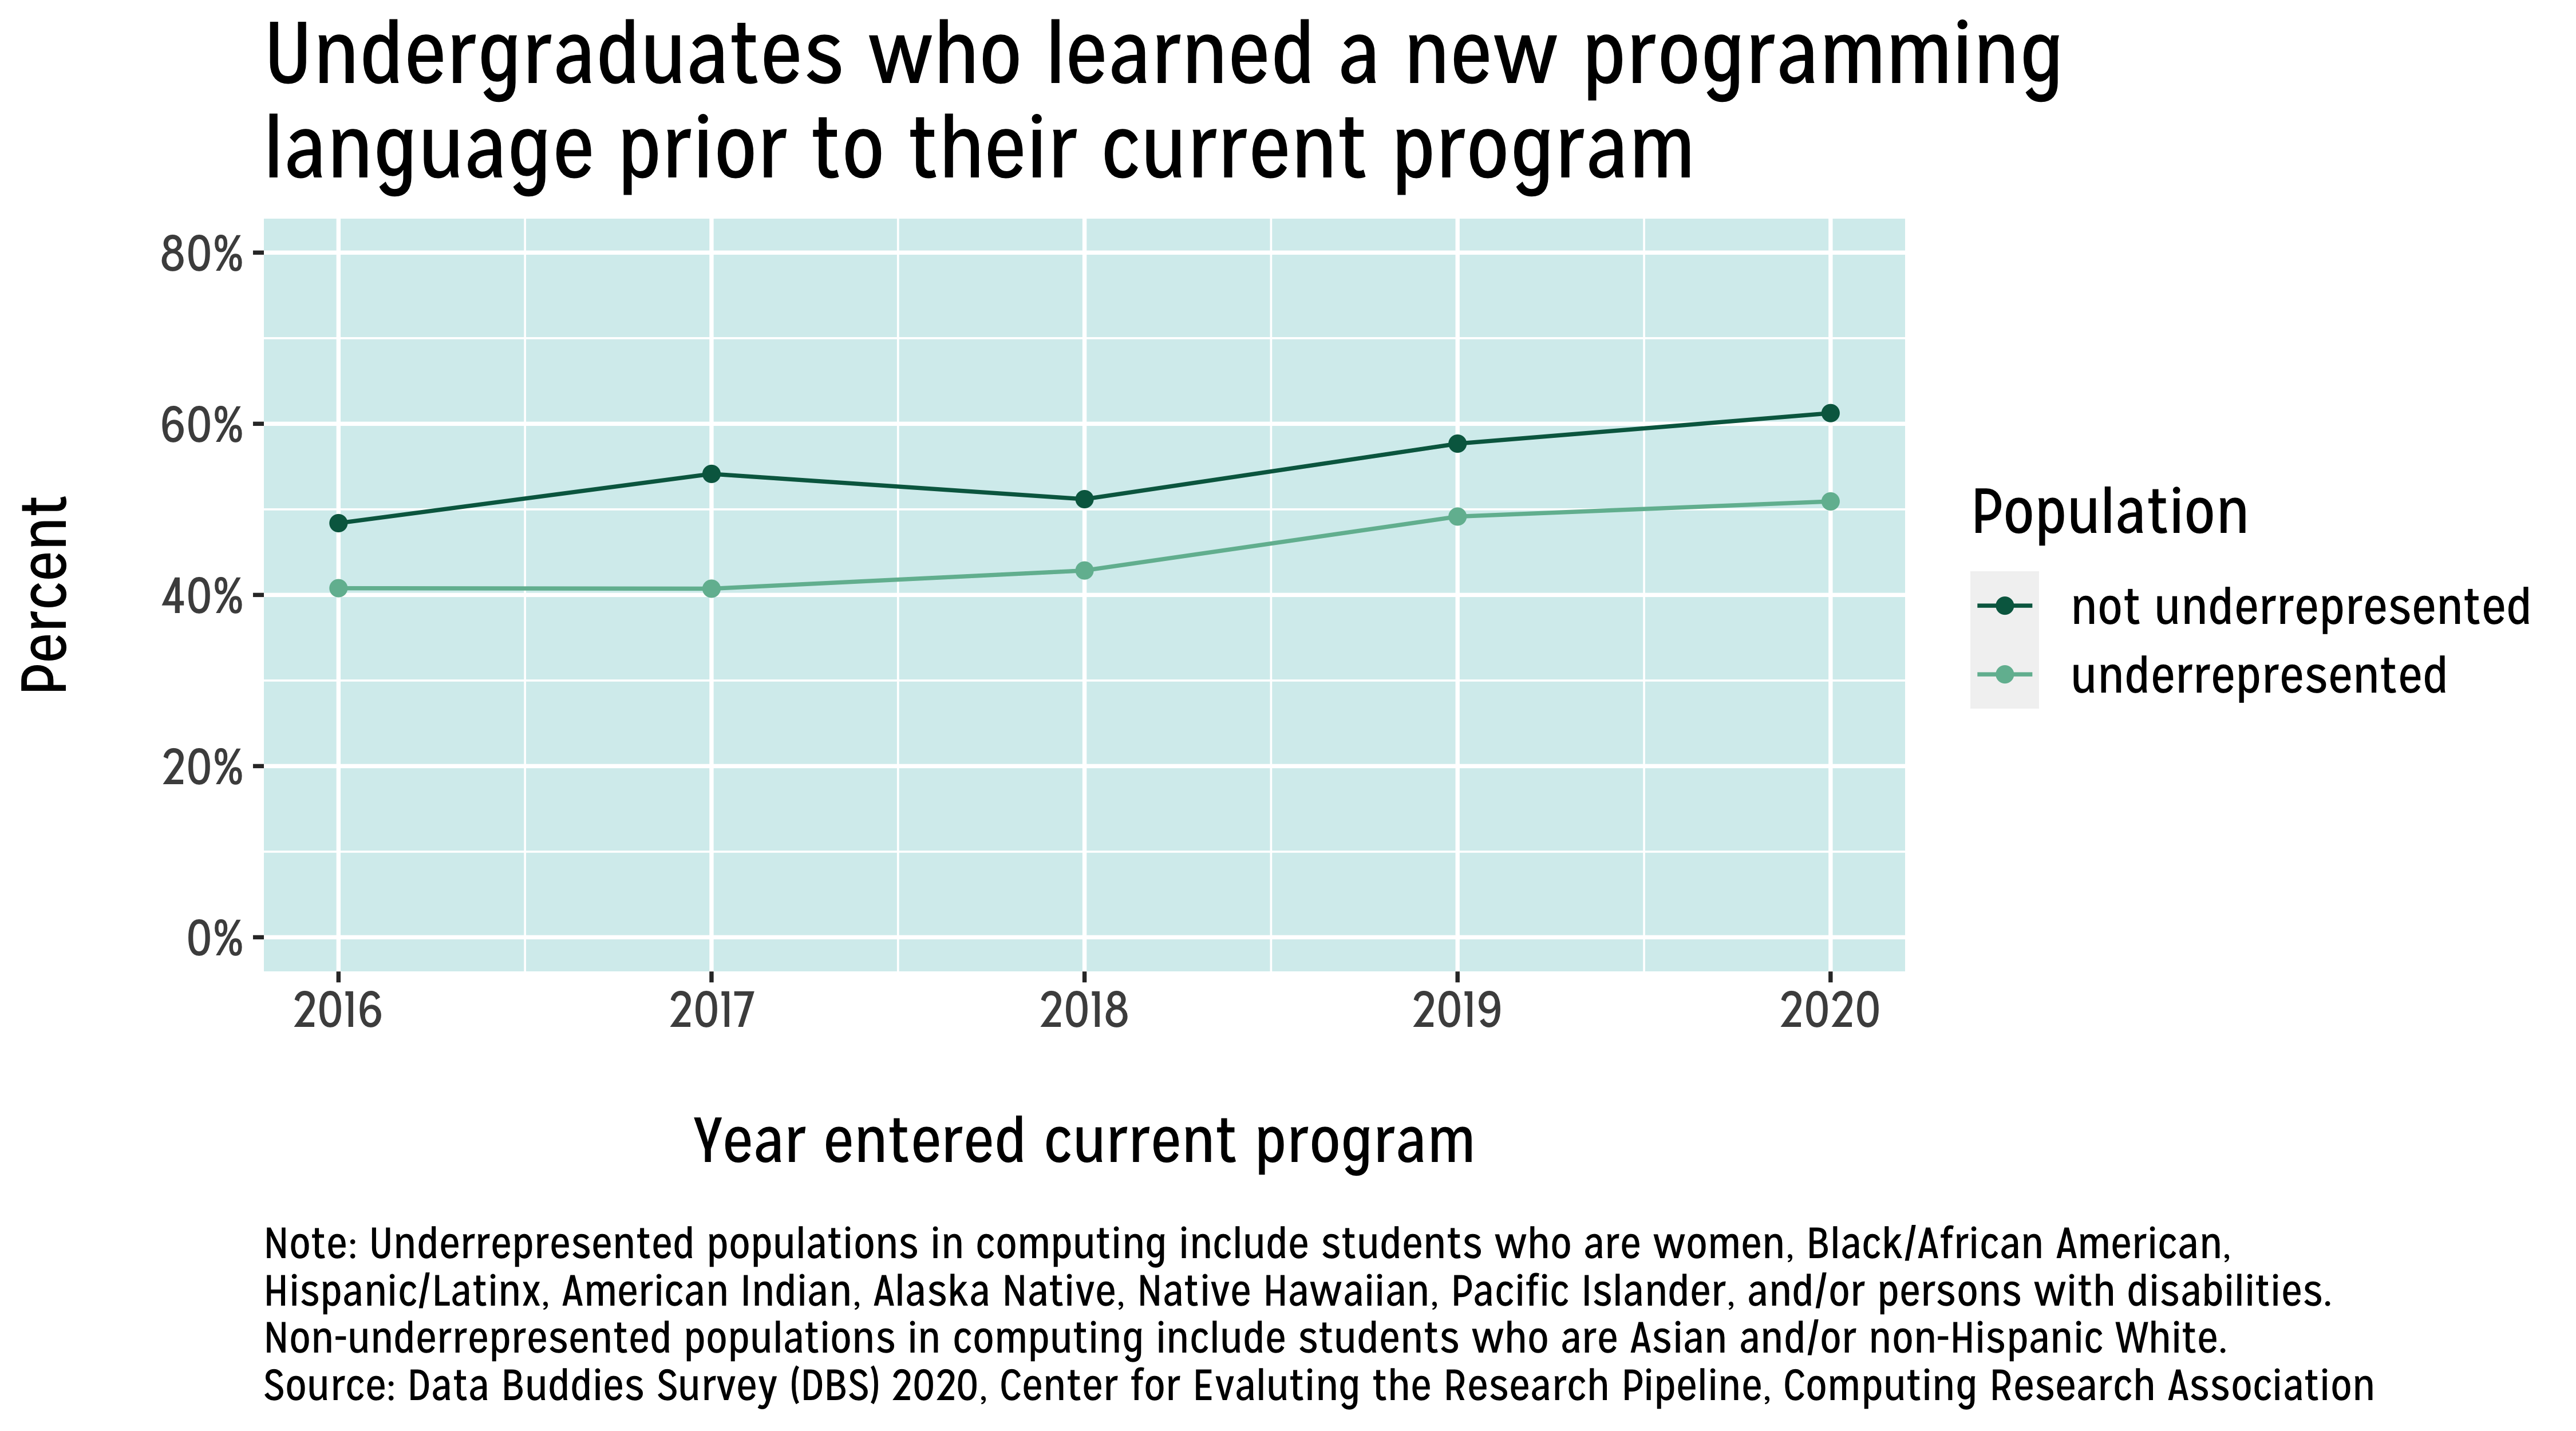 Line graph showing undergraduate students' self-reported rates of learning a new programming language prior to entering their current program, by year of entering their current program